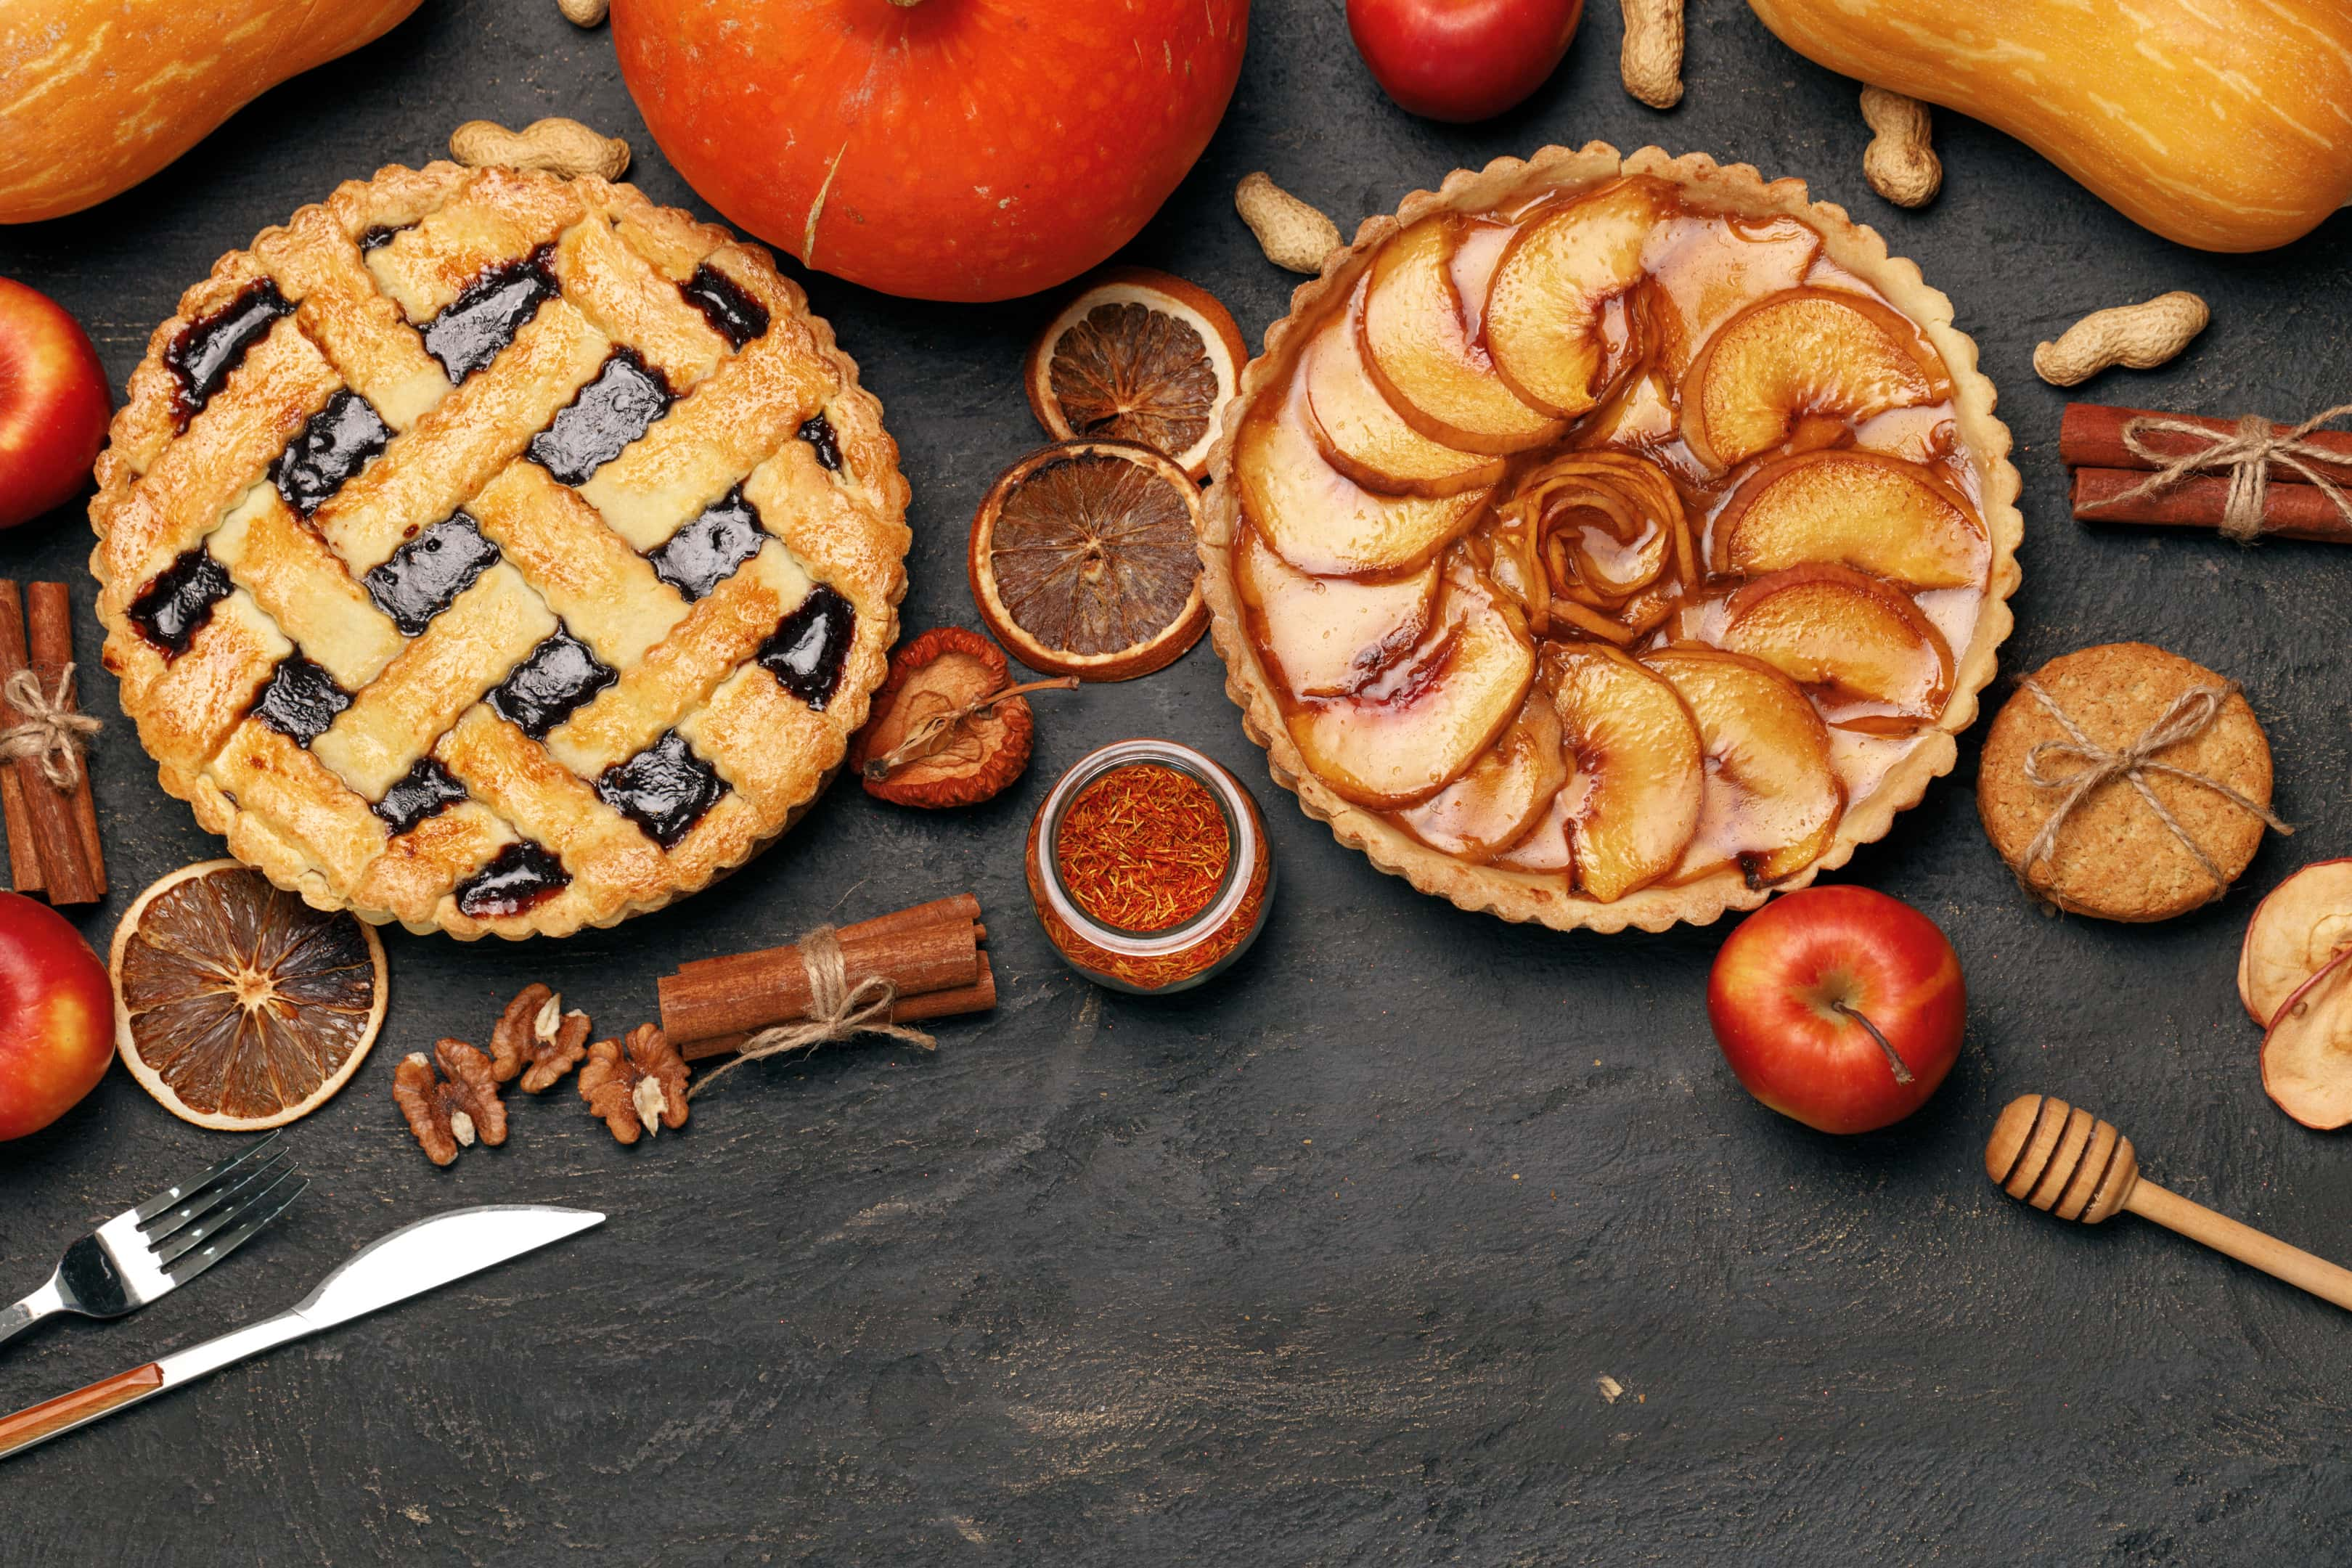 Pumpkin pie and apple pie